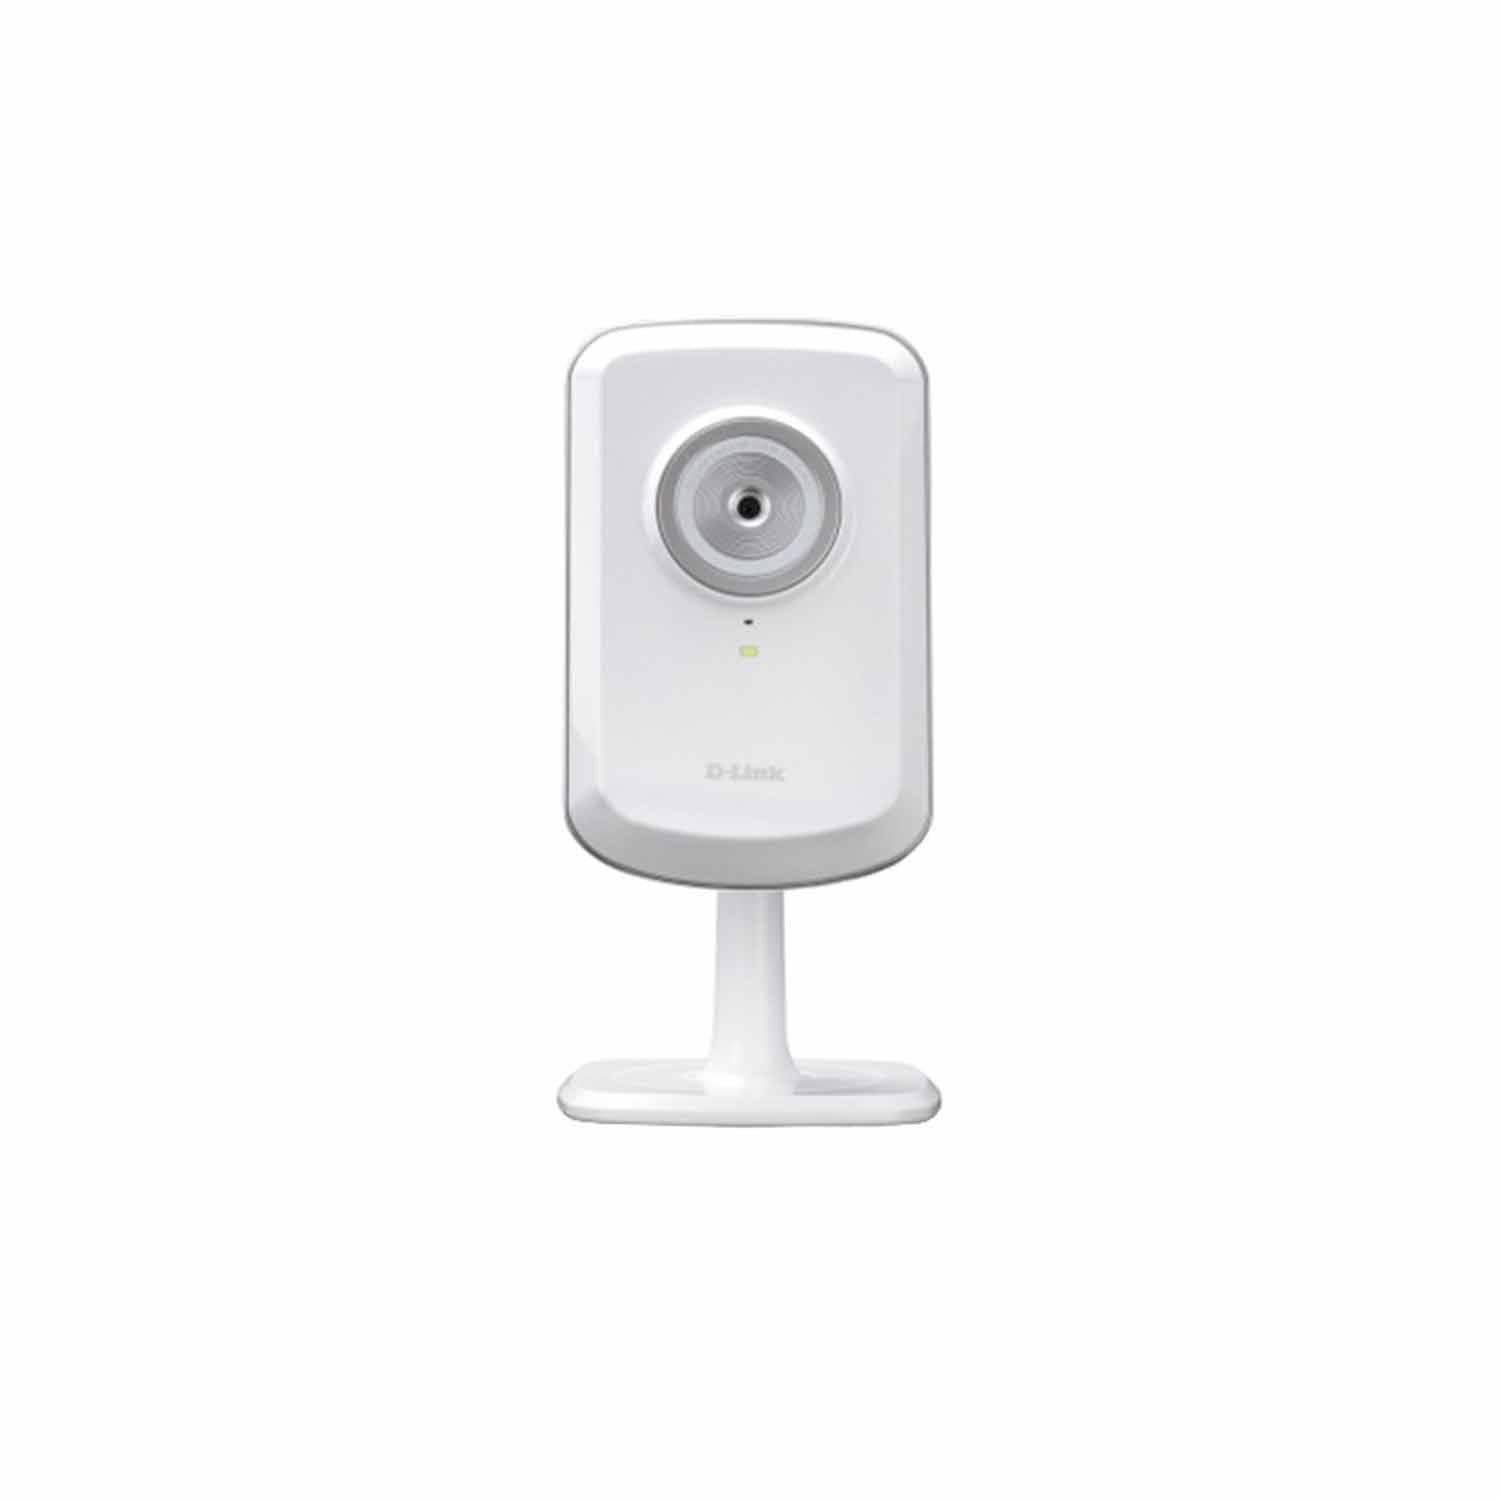 Dlink DCS-930L IP Camera